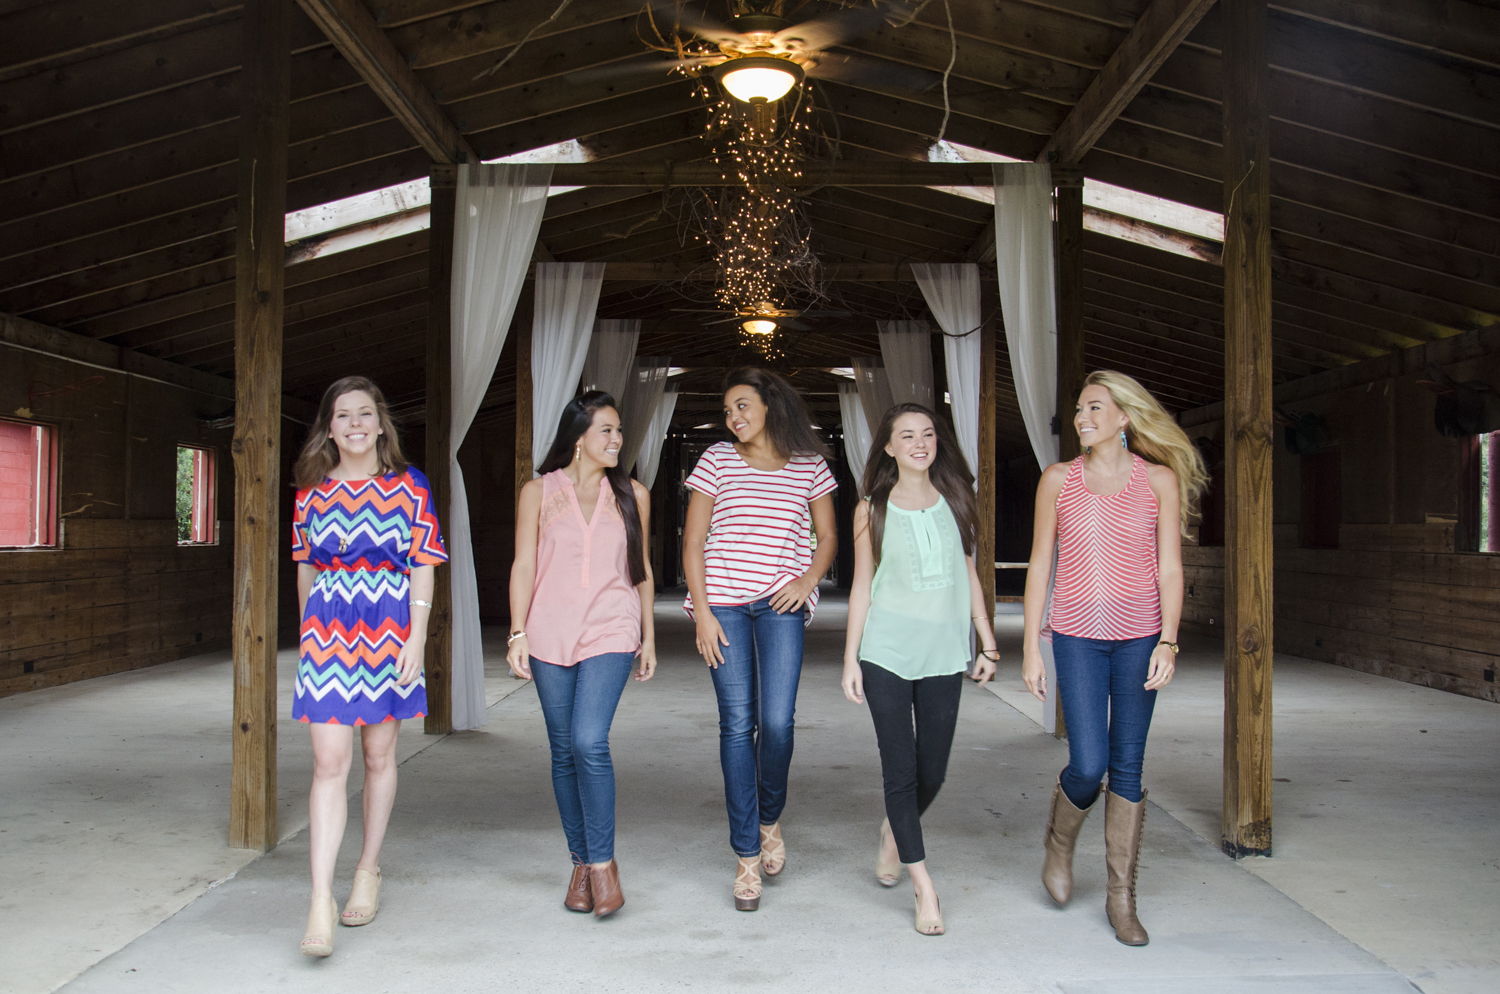 Clothing: Threads Boutique Models: Kaia Egan, Kayley Jacobs, Kimberly Jacobs, Anna Heritage, Hannah Leverette Location: Red Gate - Savannah, GA